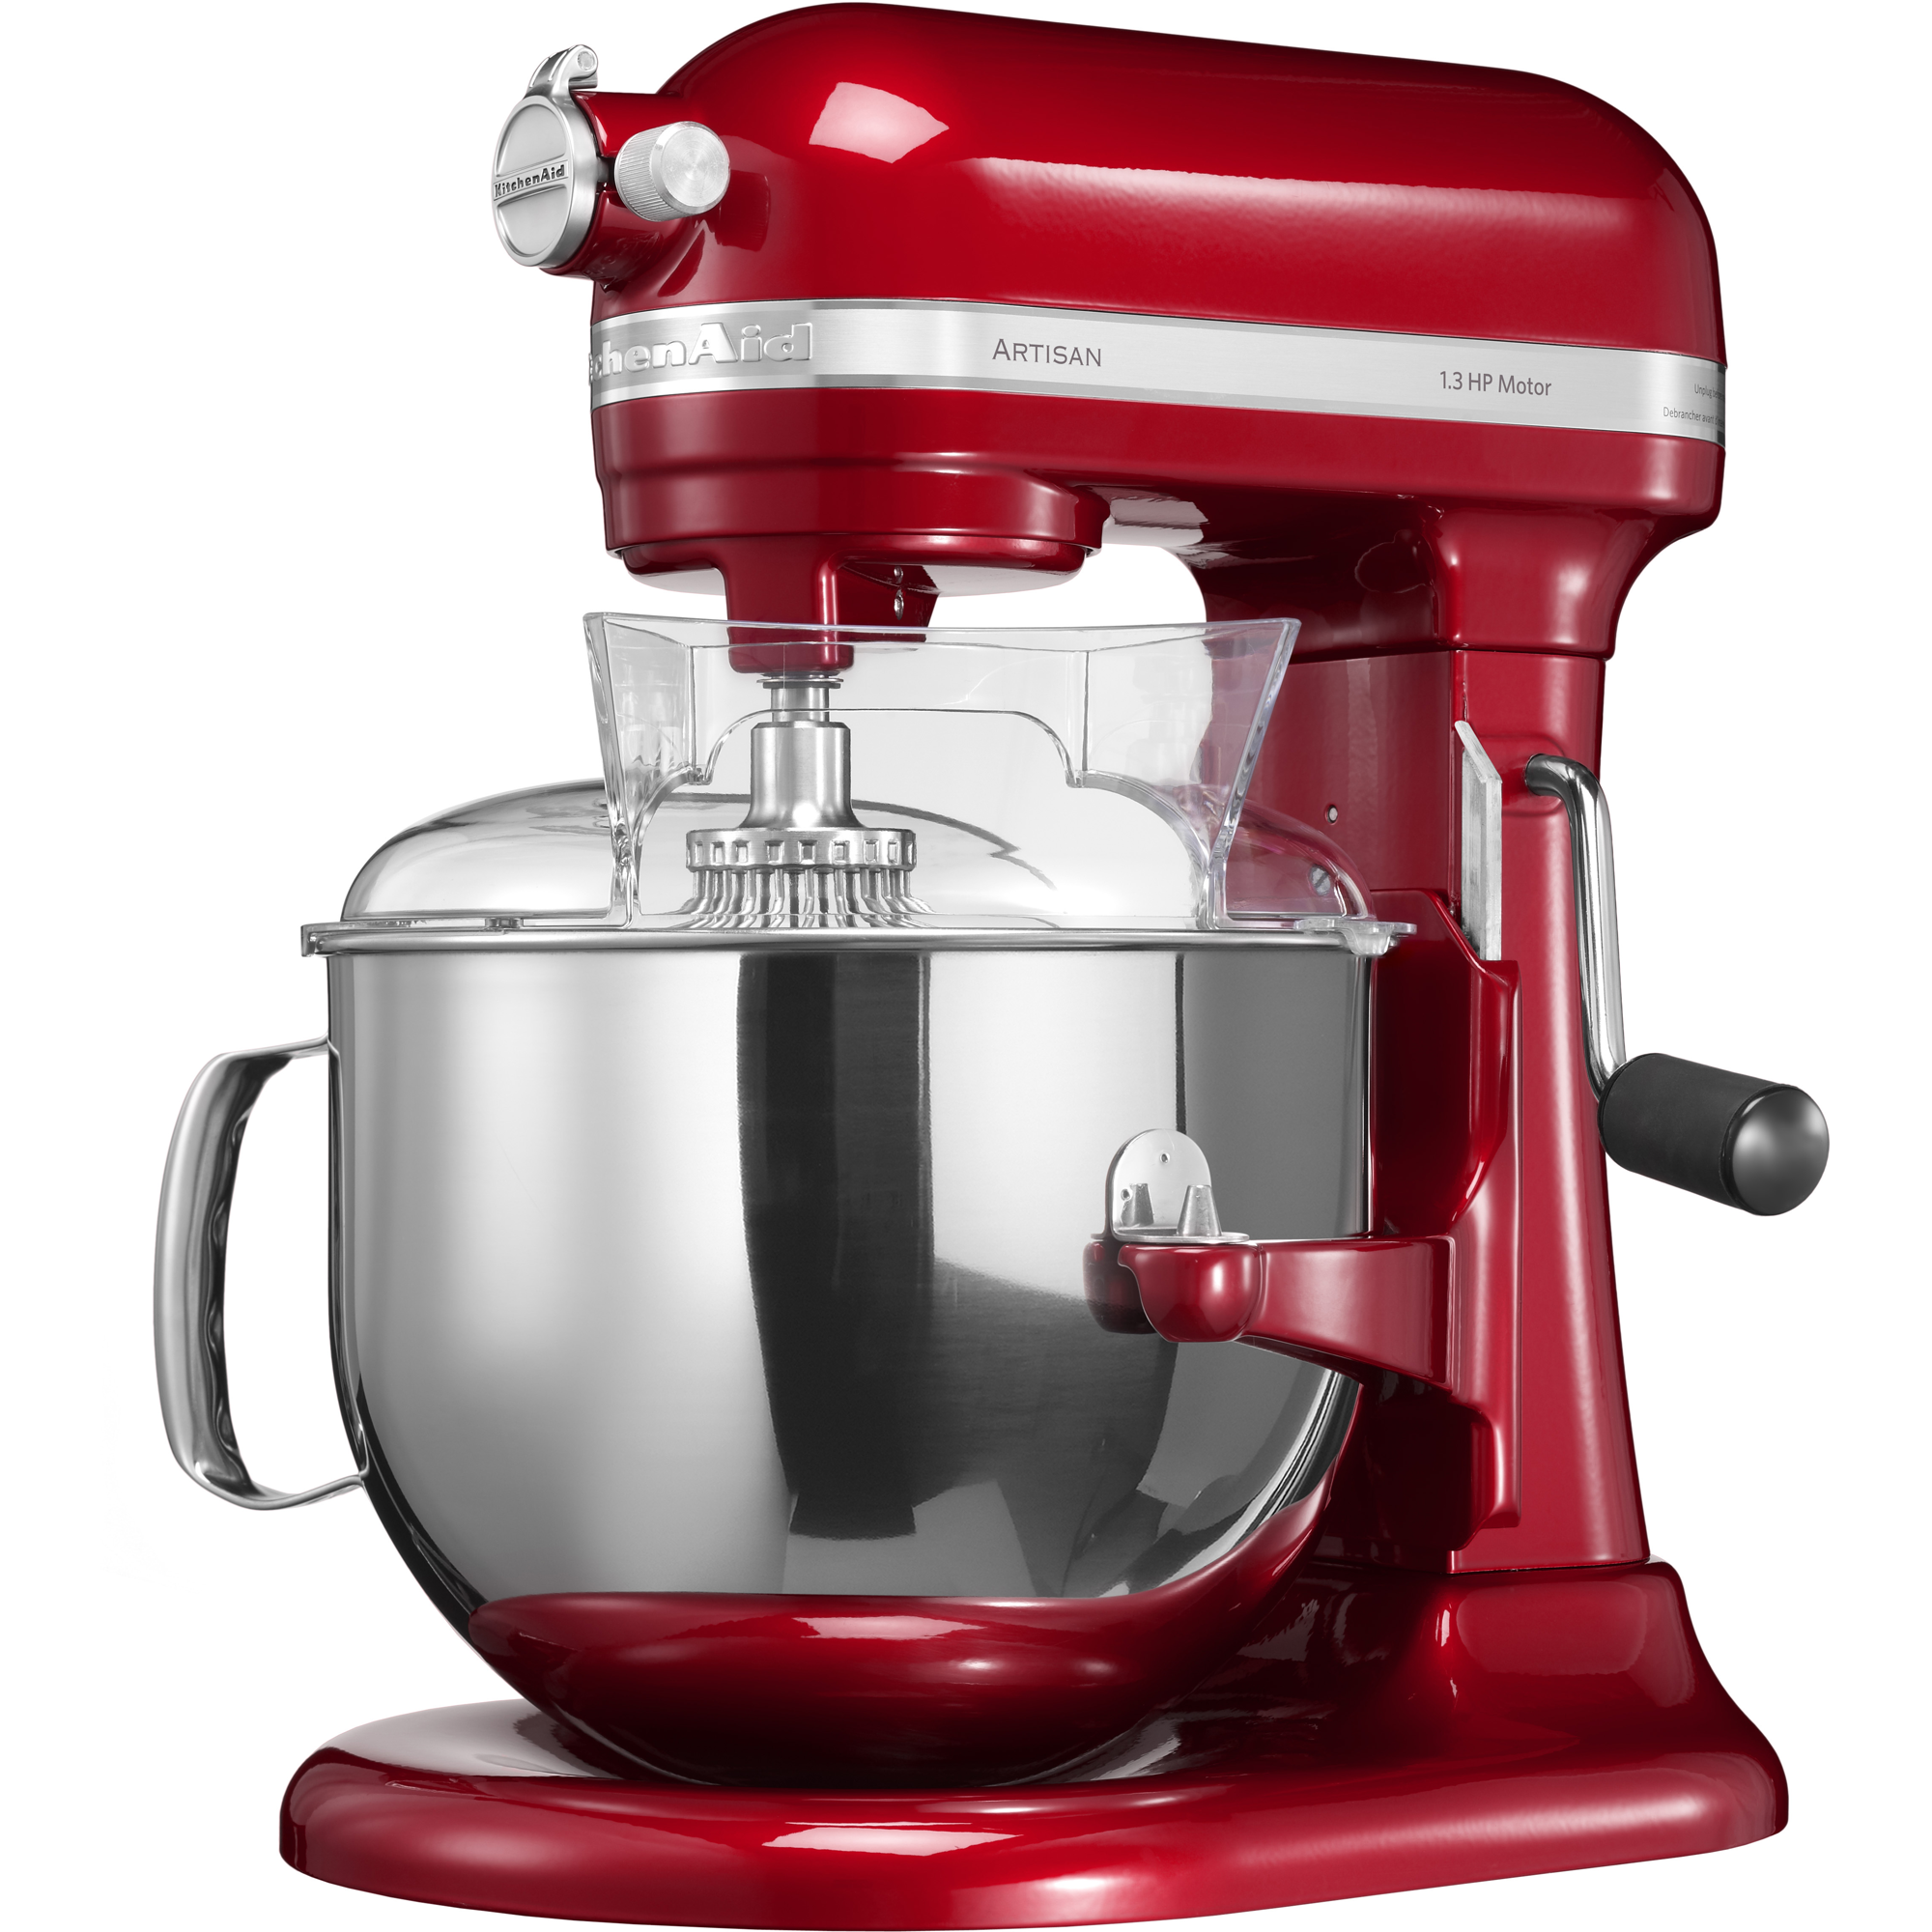 Robot Sur Socle Kitchenaid Artisan Bol Relevable De 6,9 L